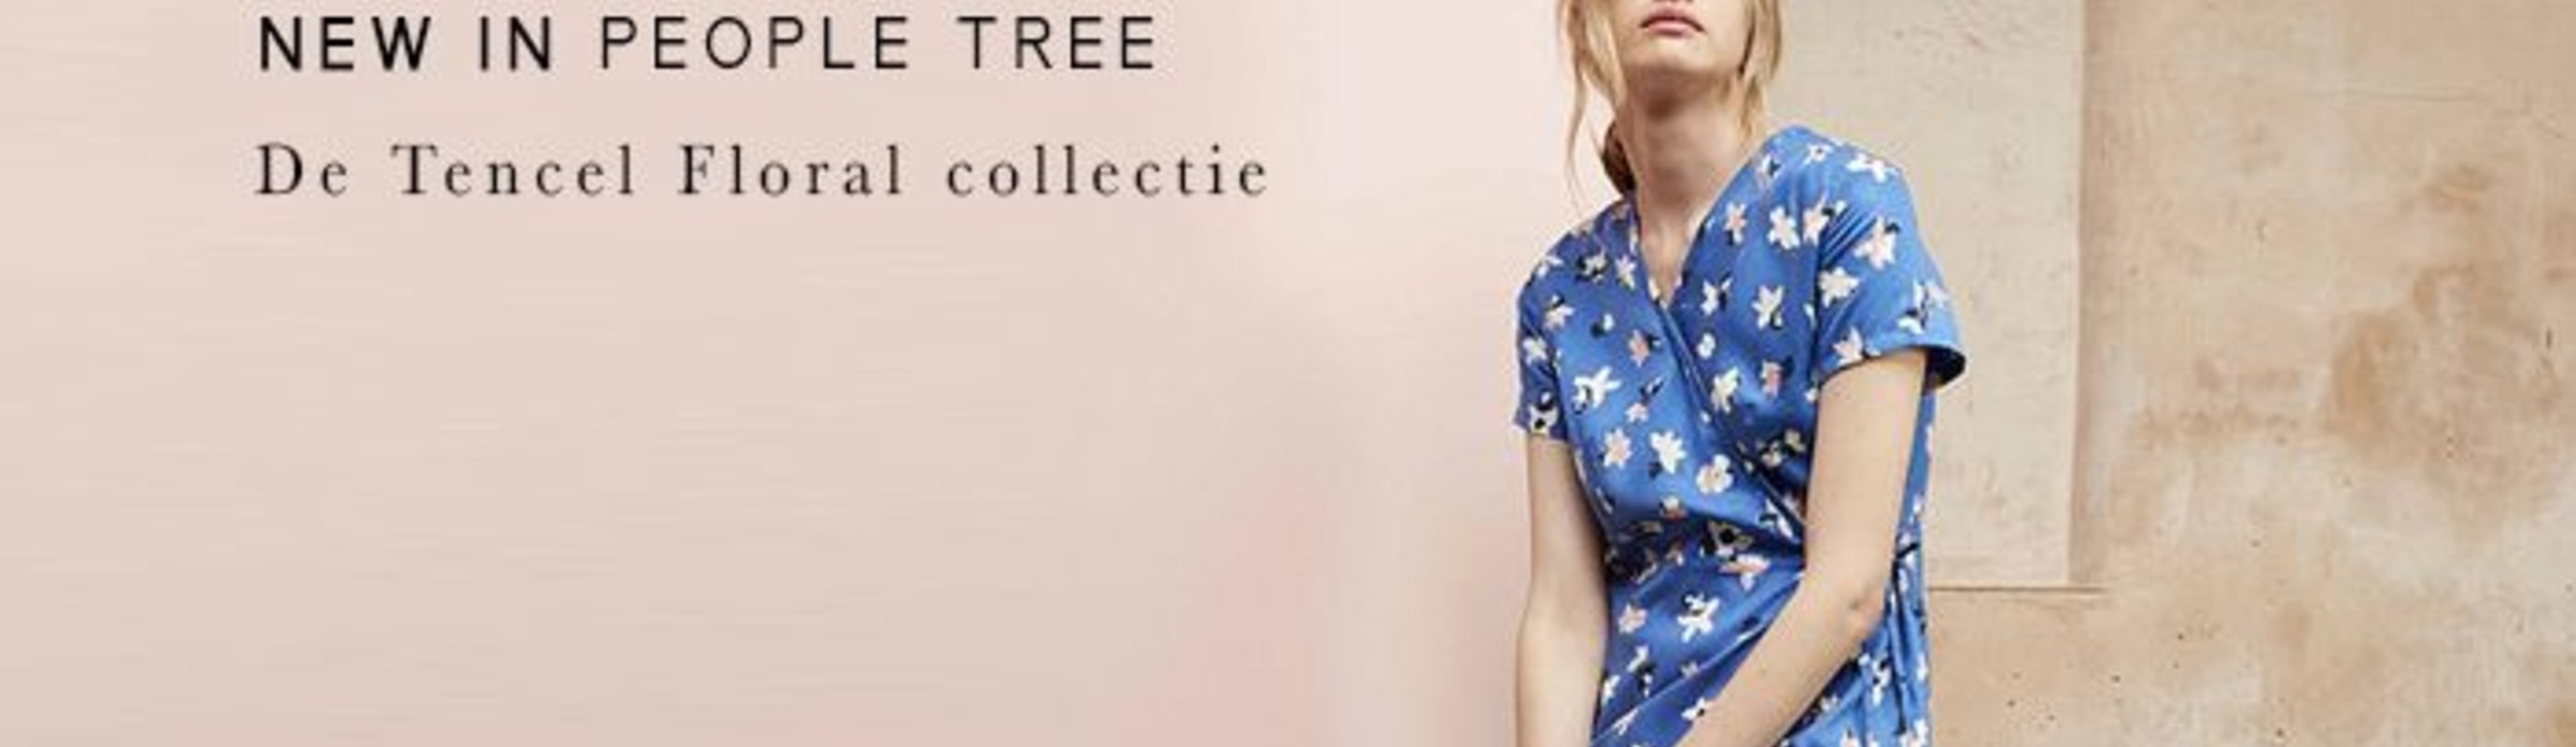 NEW IN | De People Tree Tencel collectie